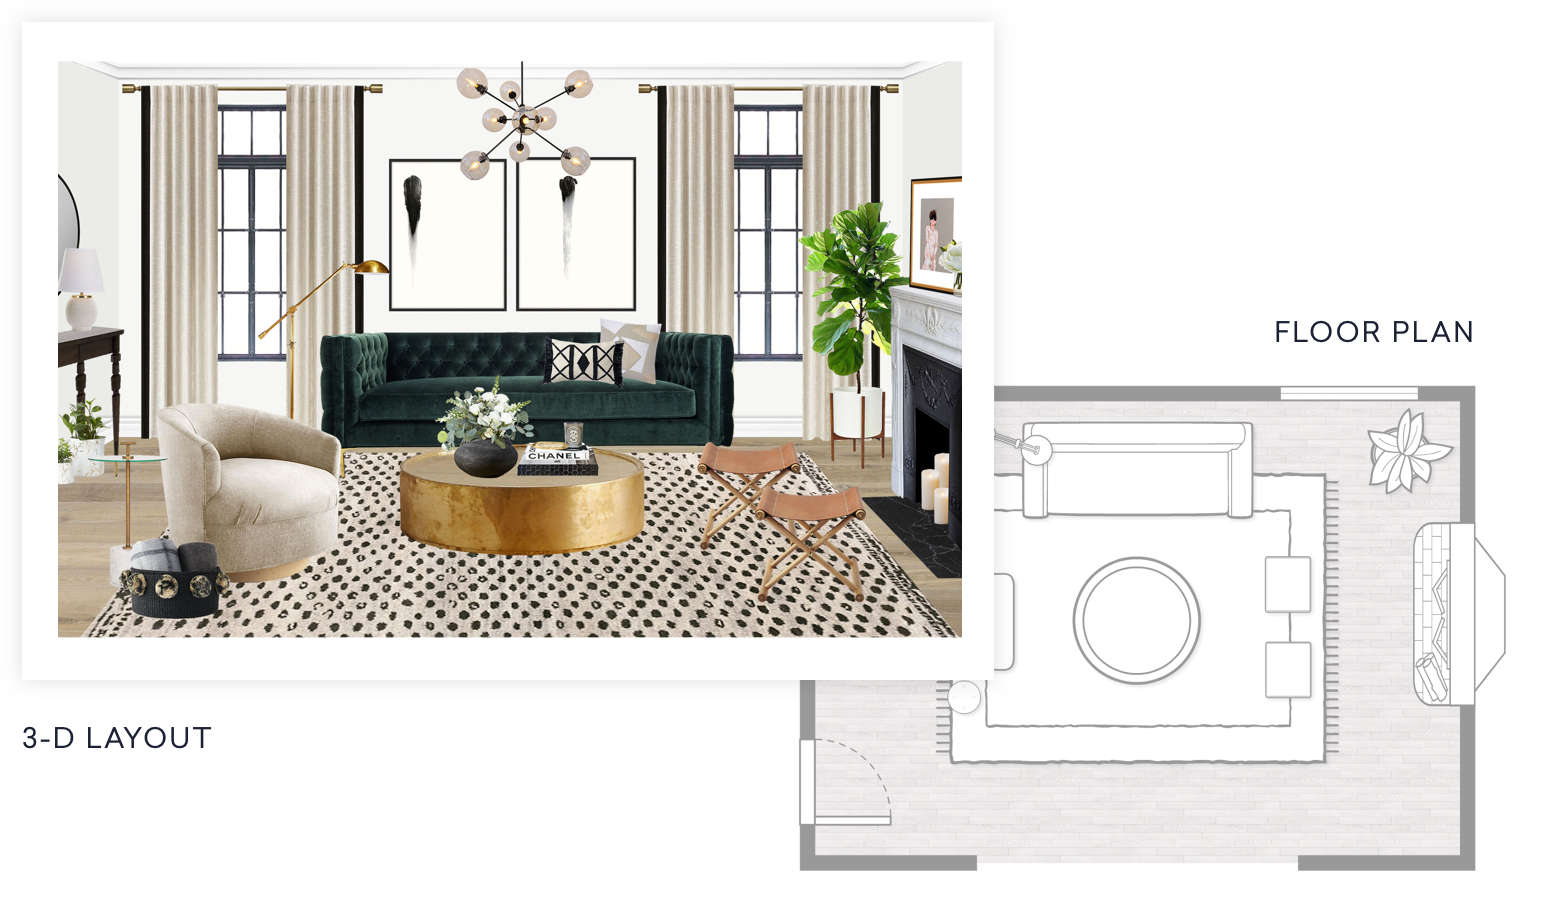 an example 3 d layout and floor plan built by an interior designer - Furniture Design Online